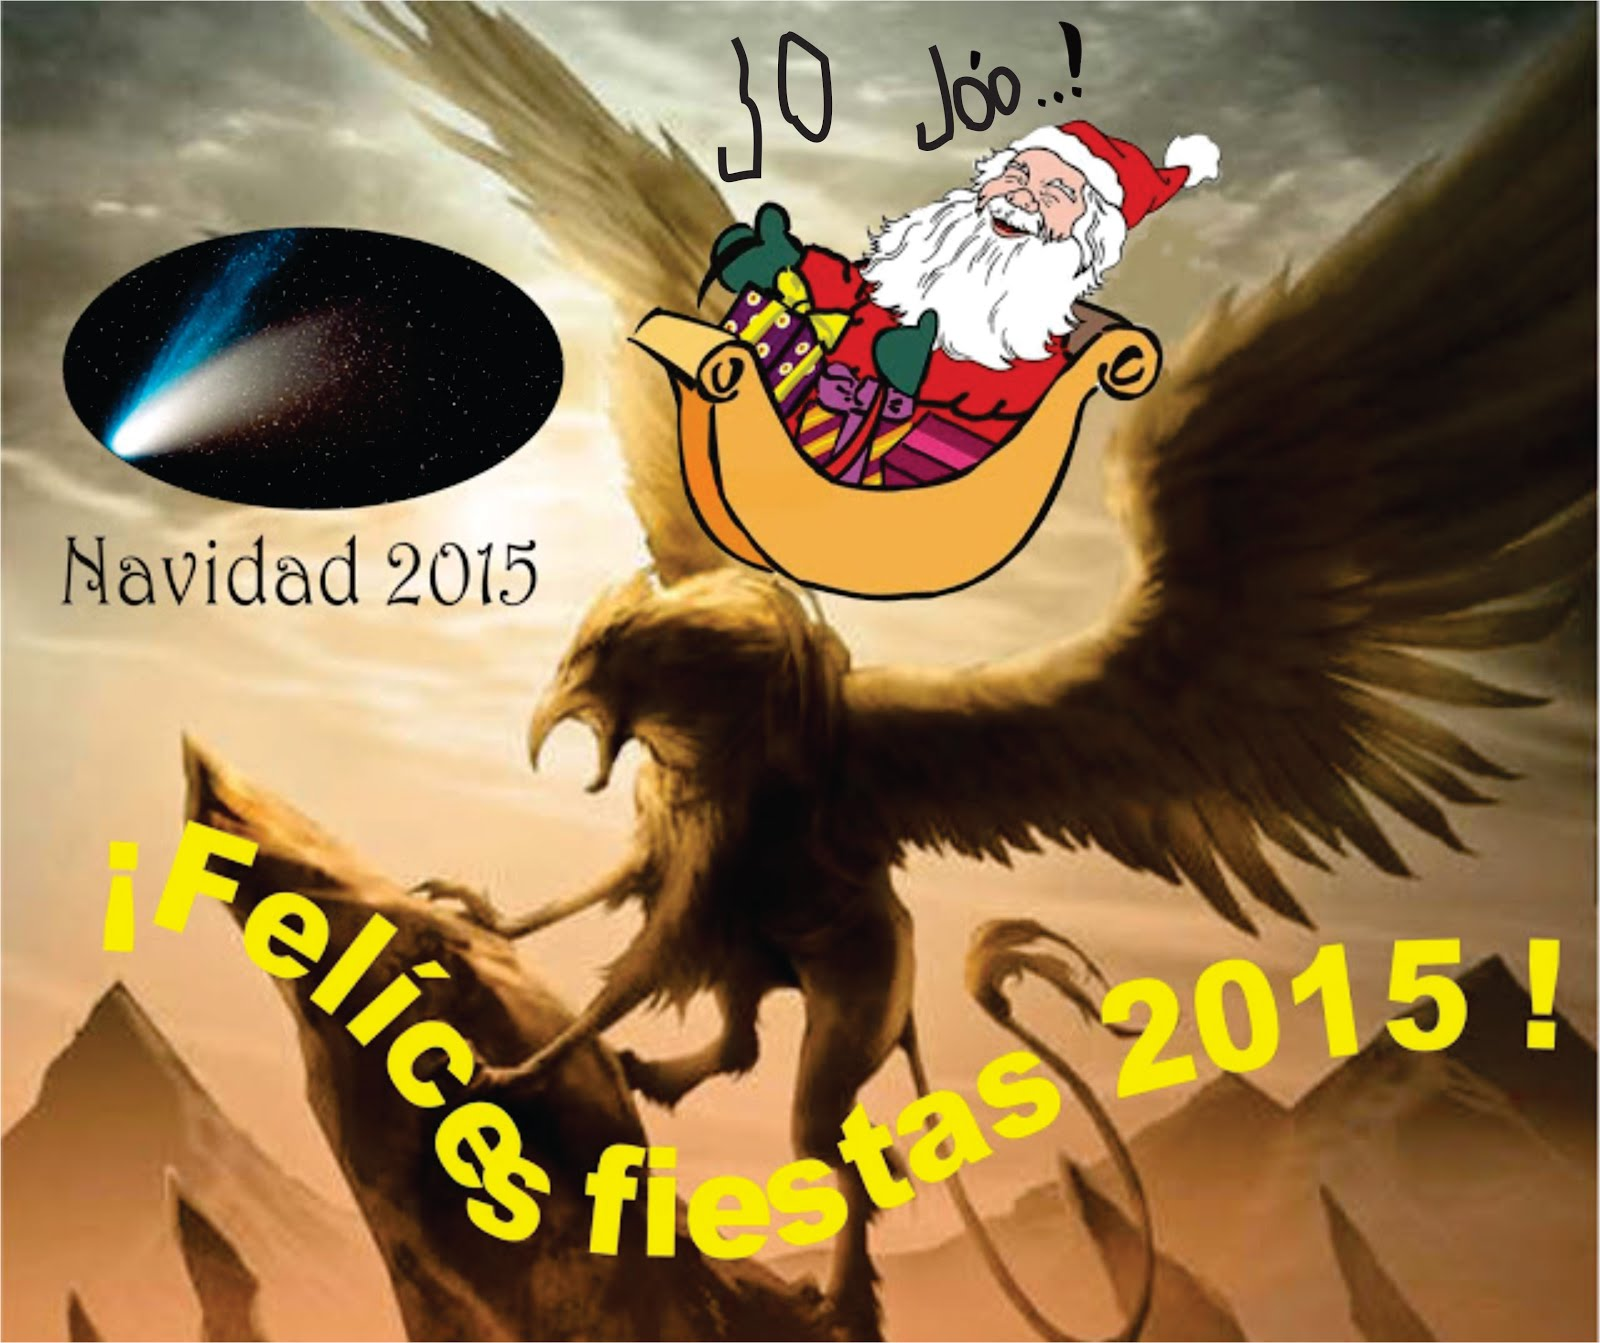 ¡FELÍCES FIESTAS 2015!